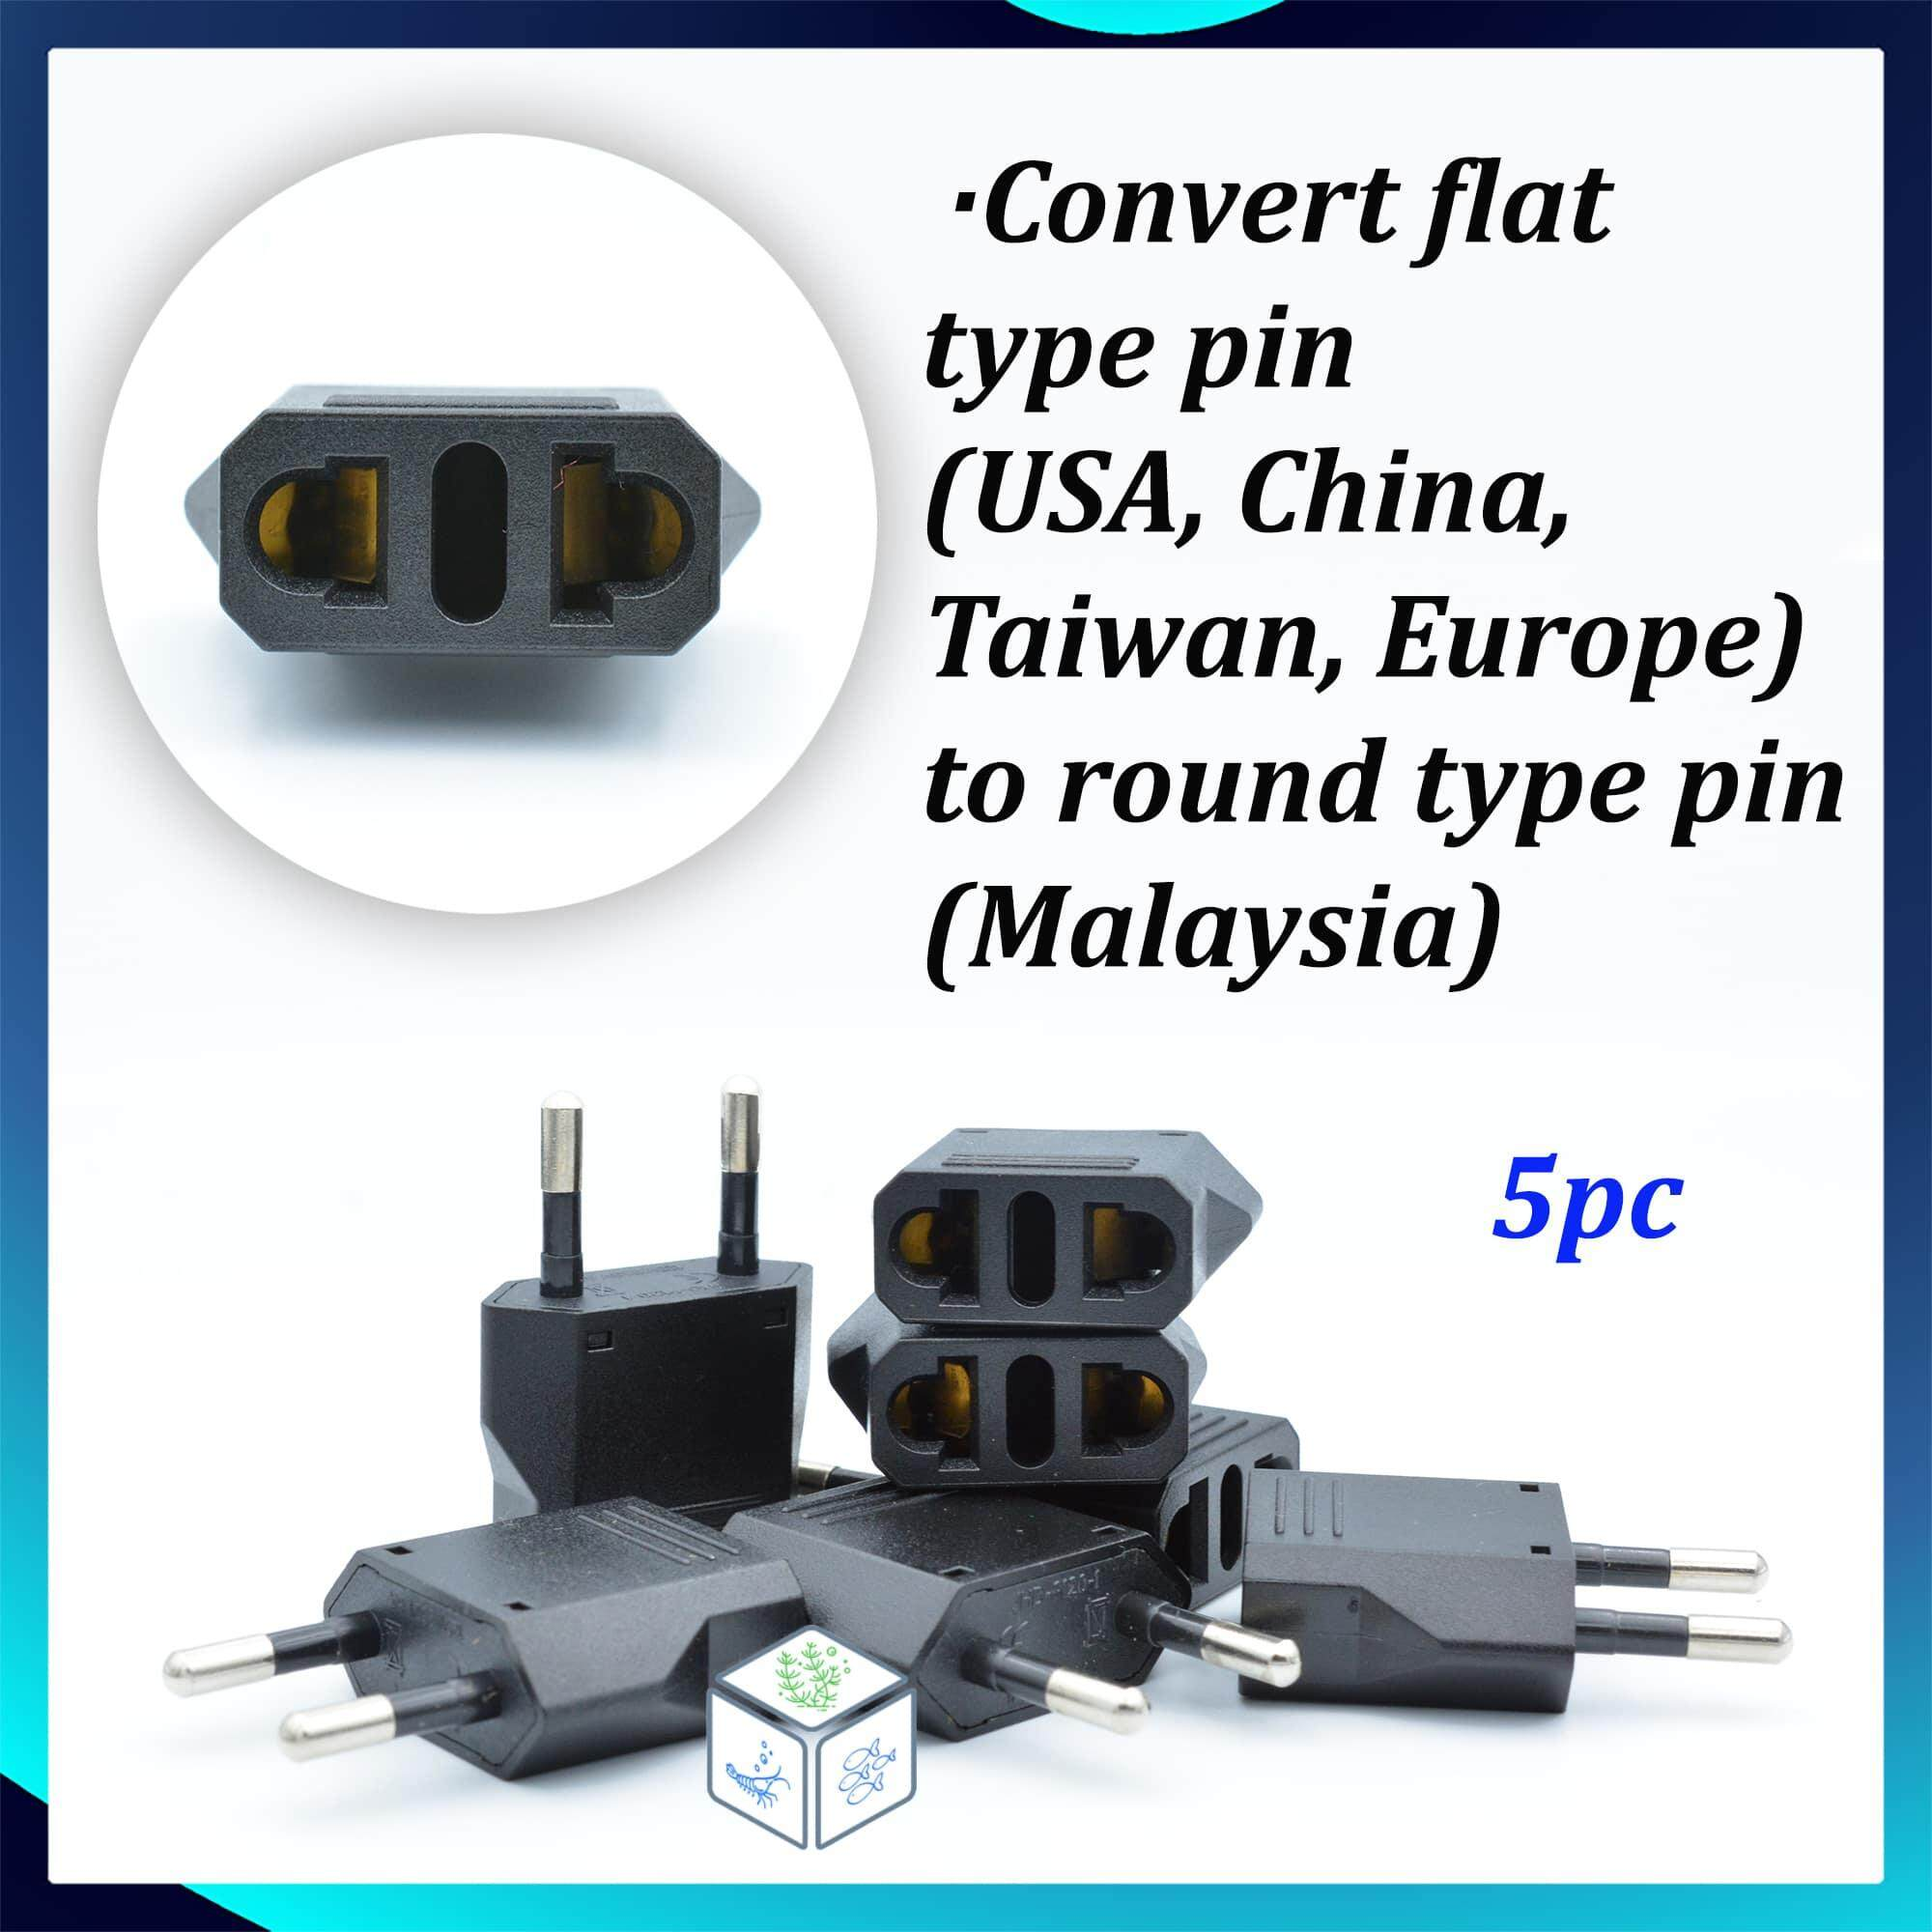 2 pin adapter plug converter (5pc)